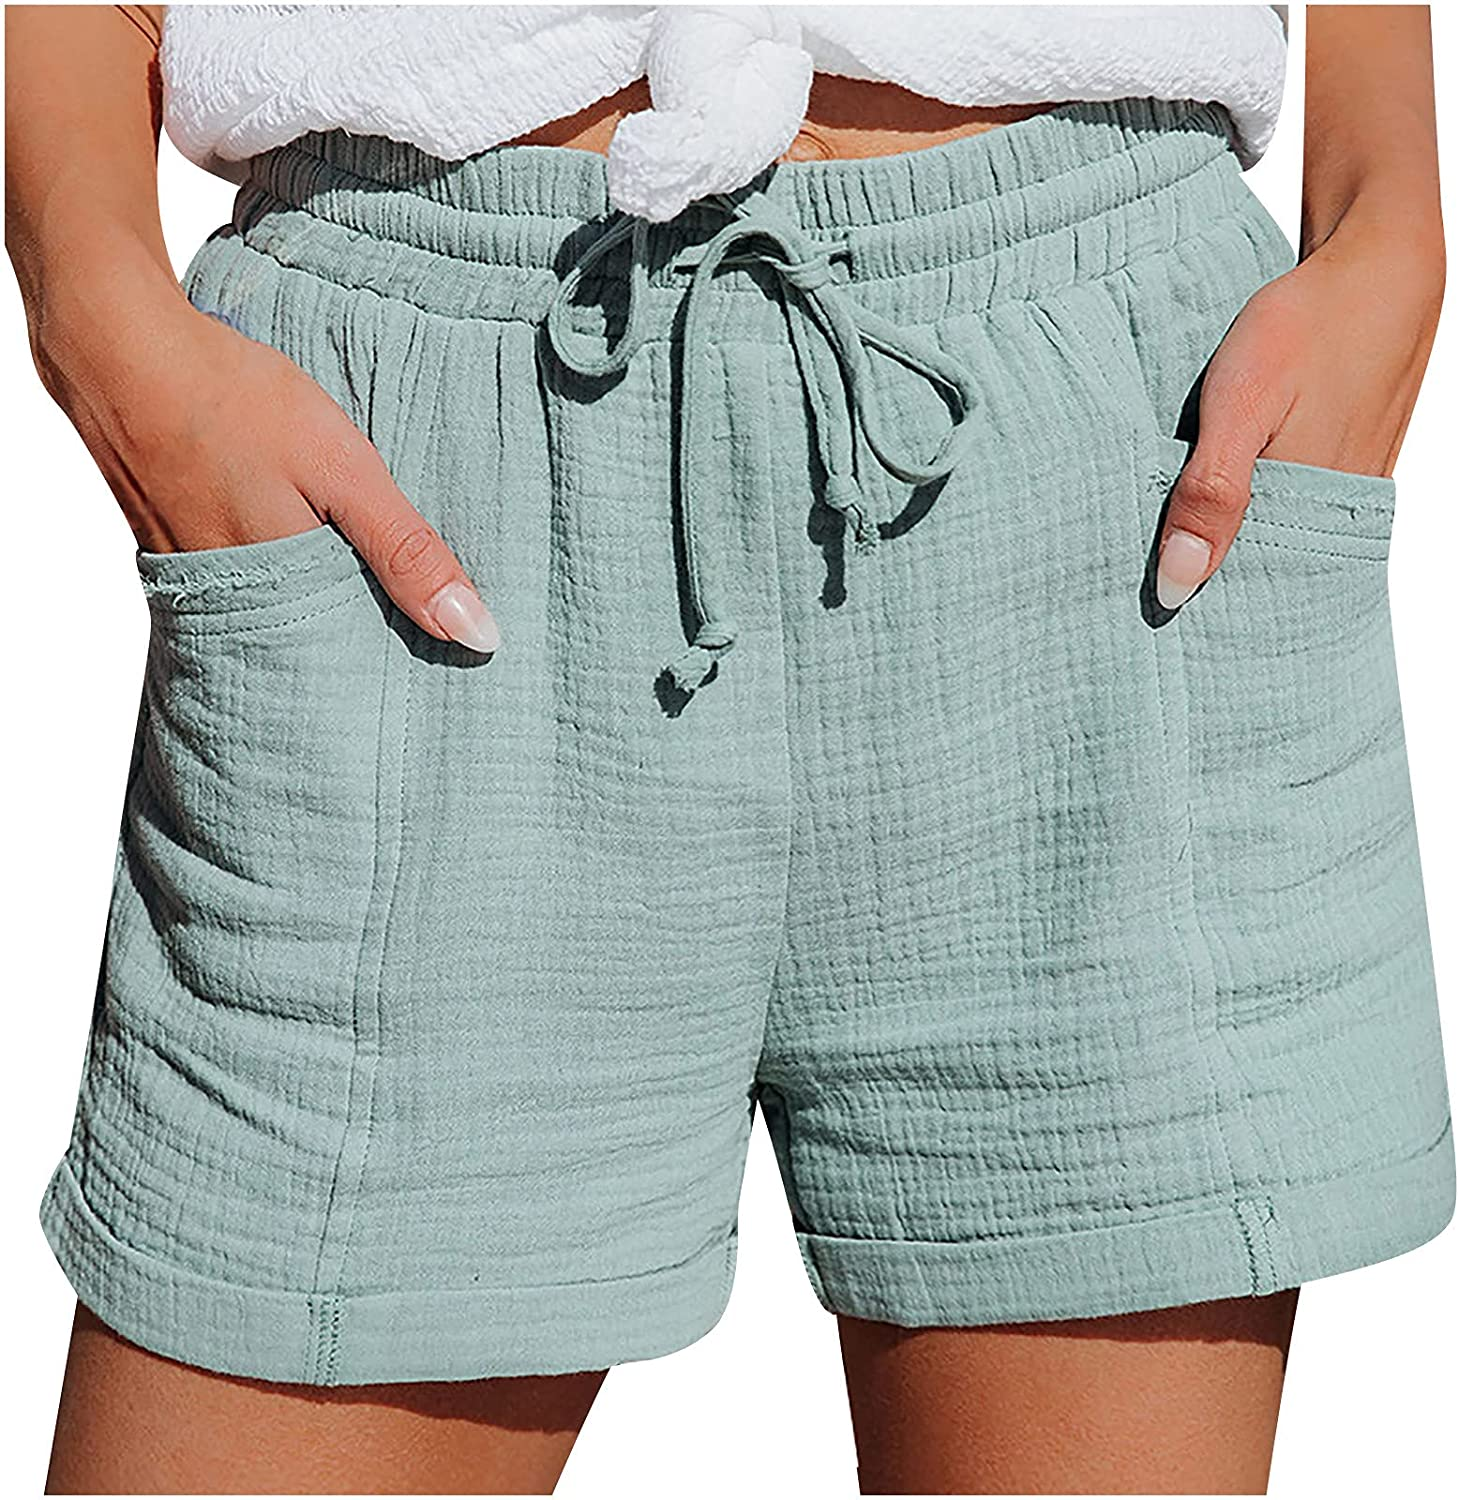 Store Bravetoshop Women's Athletic Wokout with Pockets Shorts Raleigh Mall Running